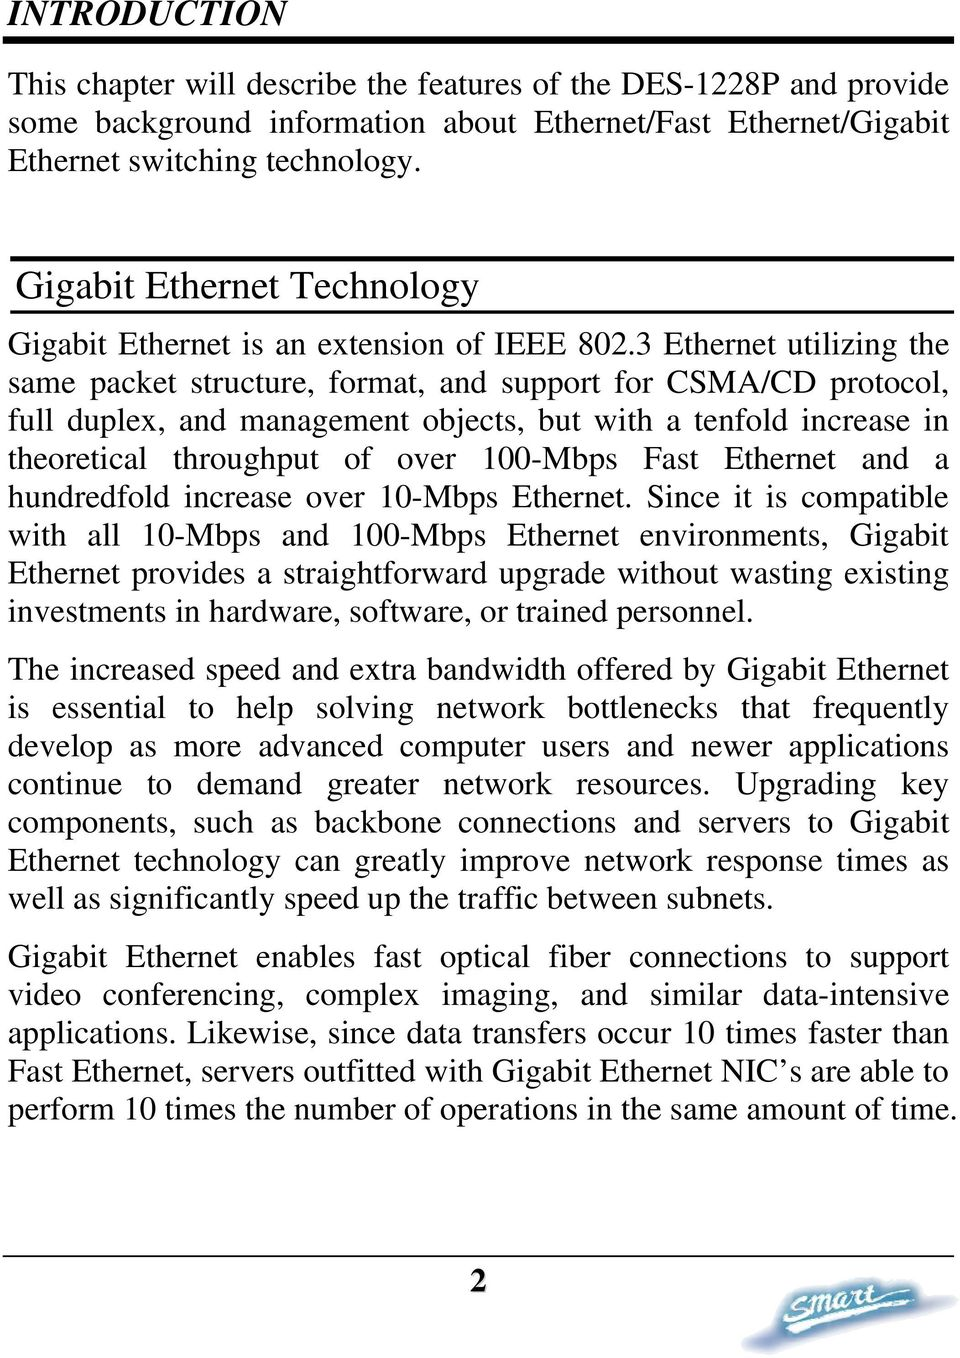 3 Ethernet utilizing the same packet structure, format, and support for CSMA/CD protocol, full duplex, and management objects, but with a tenfold increase in theoretical throughput of over 100-Mbps